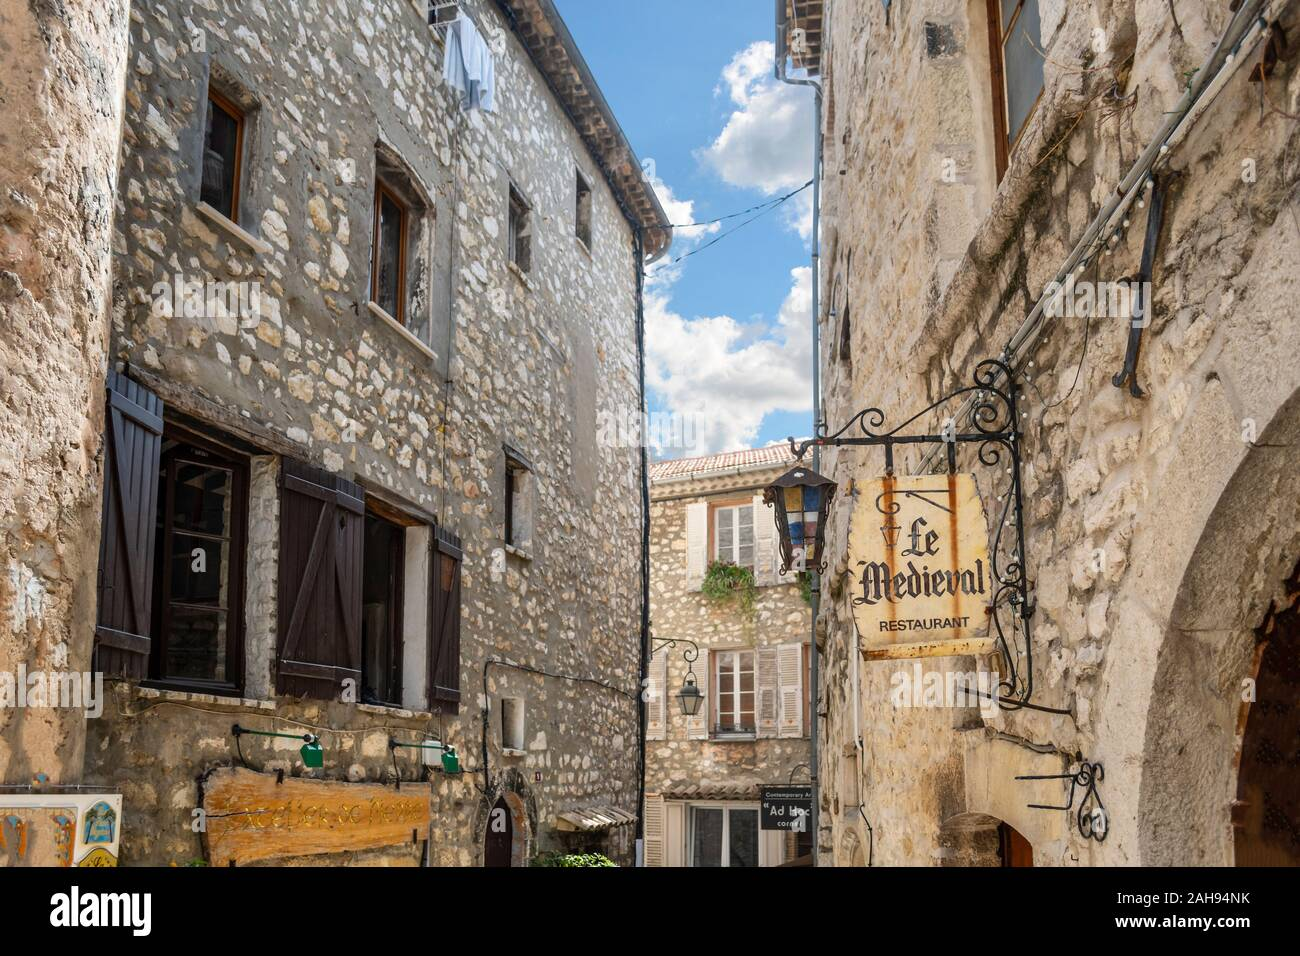 A quaint sign hangs on an ancient street inside the medieval walled stone village of Tourrettes Sur Loup in the Provence Alpes Maritimes area. Stock Photo